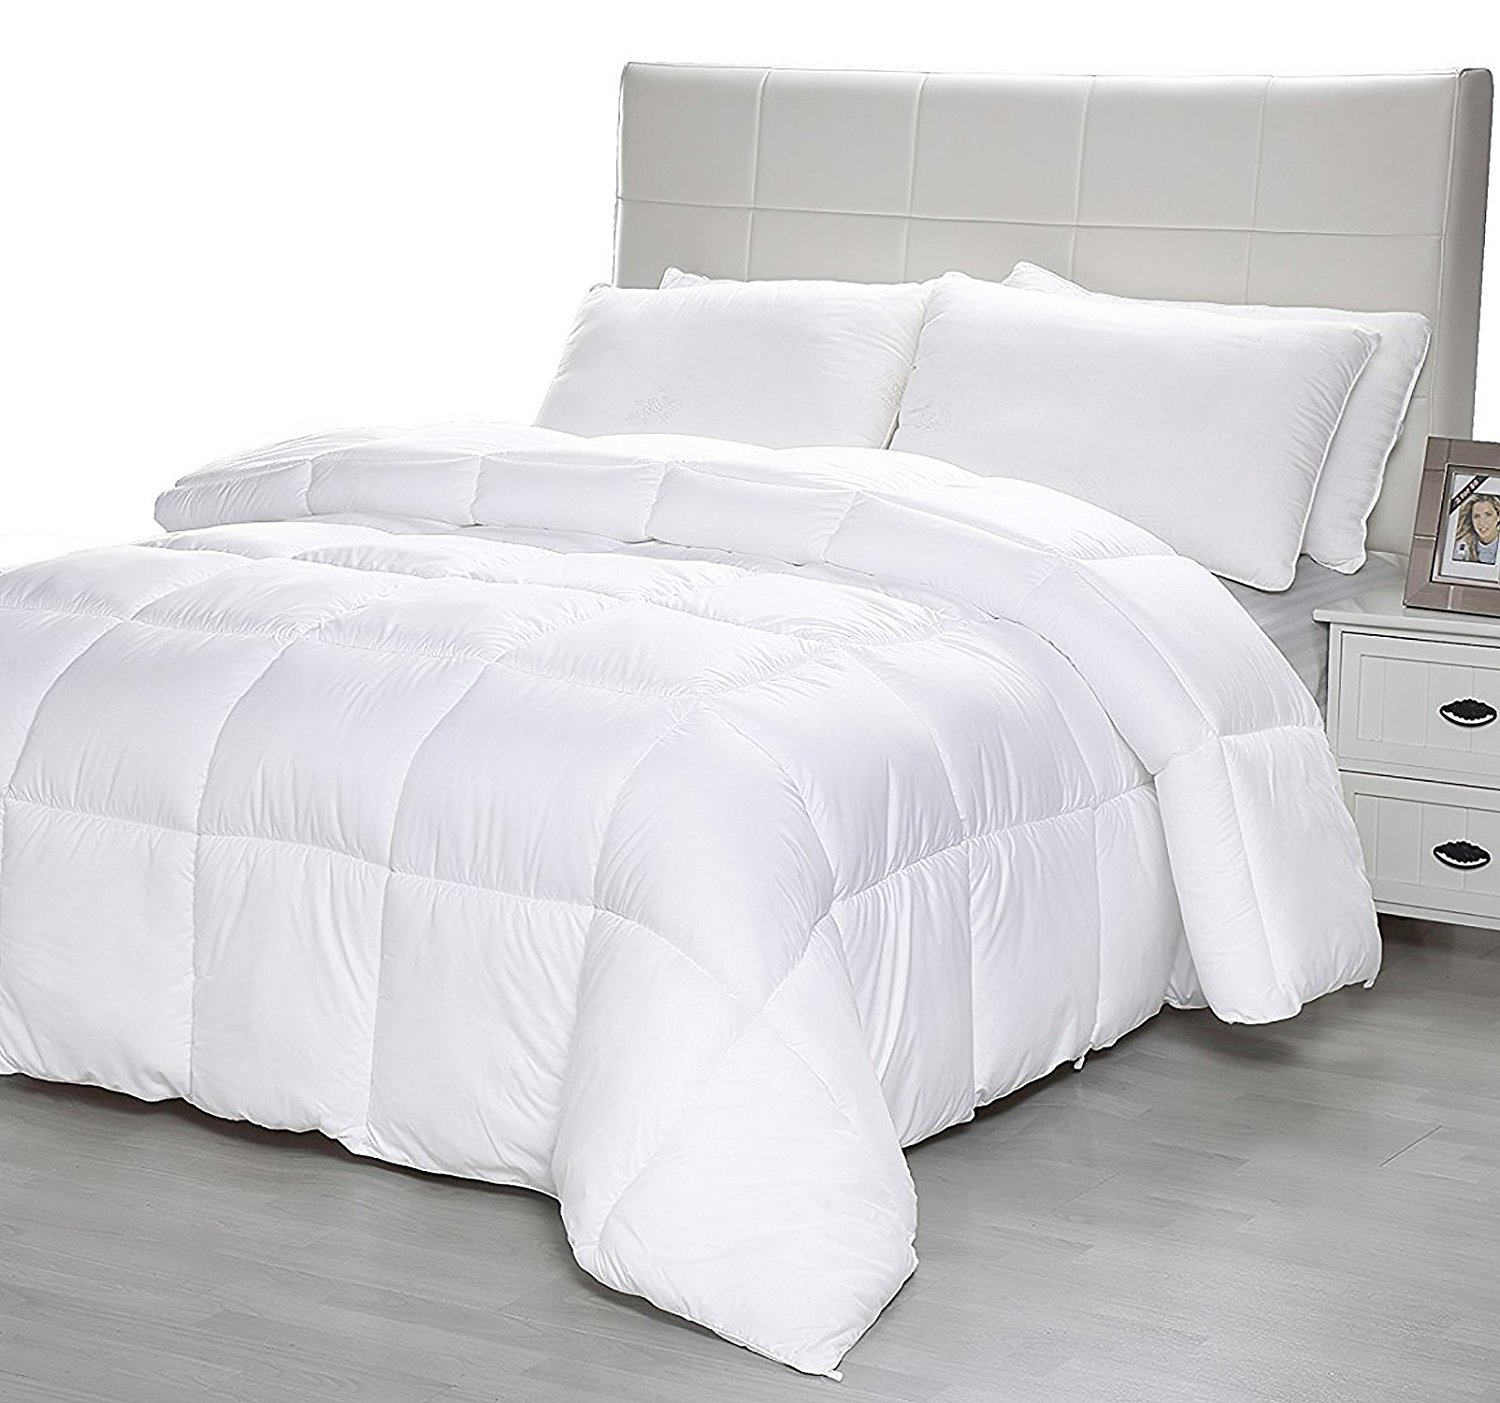 Equinox All-Season White Quilted Comforter - Goose Down Alternative Queen Comforter